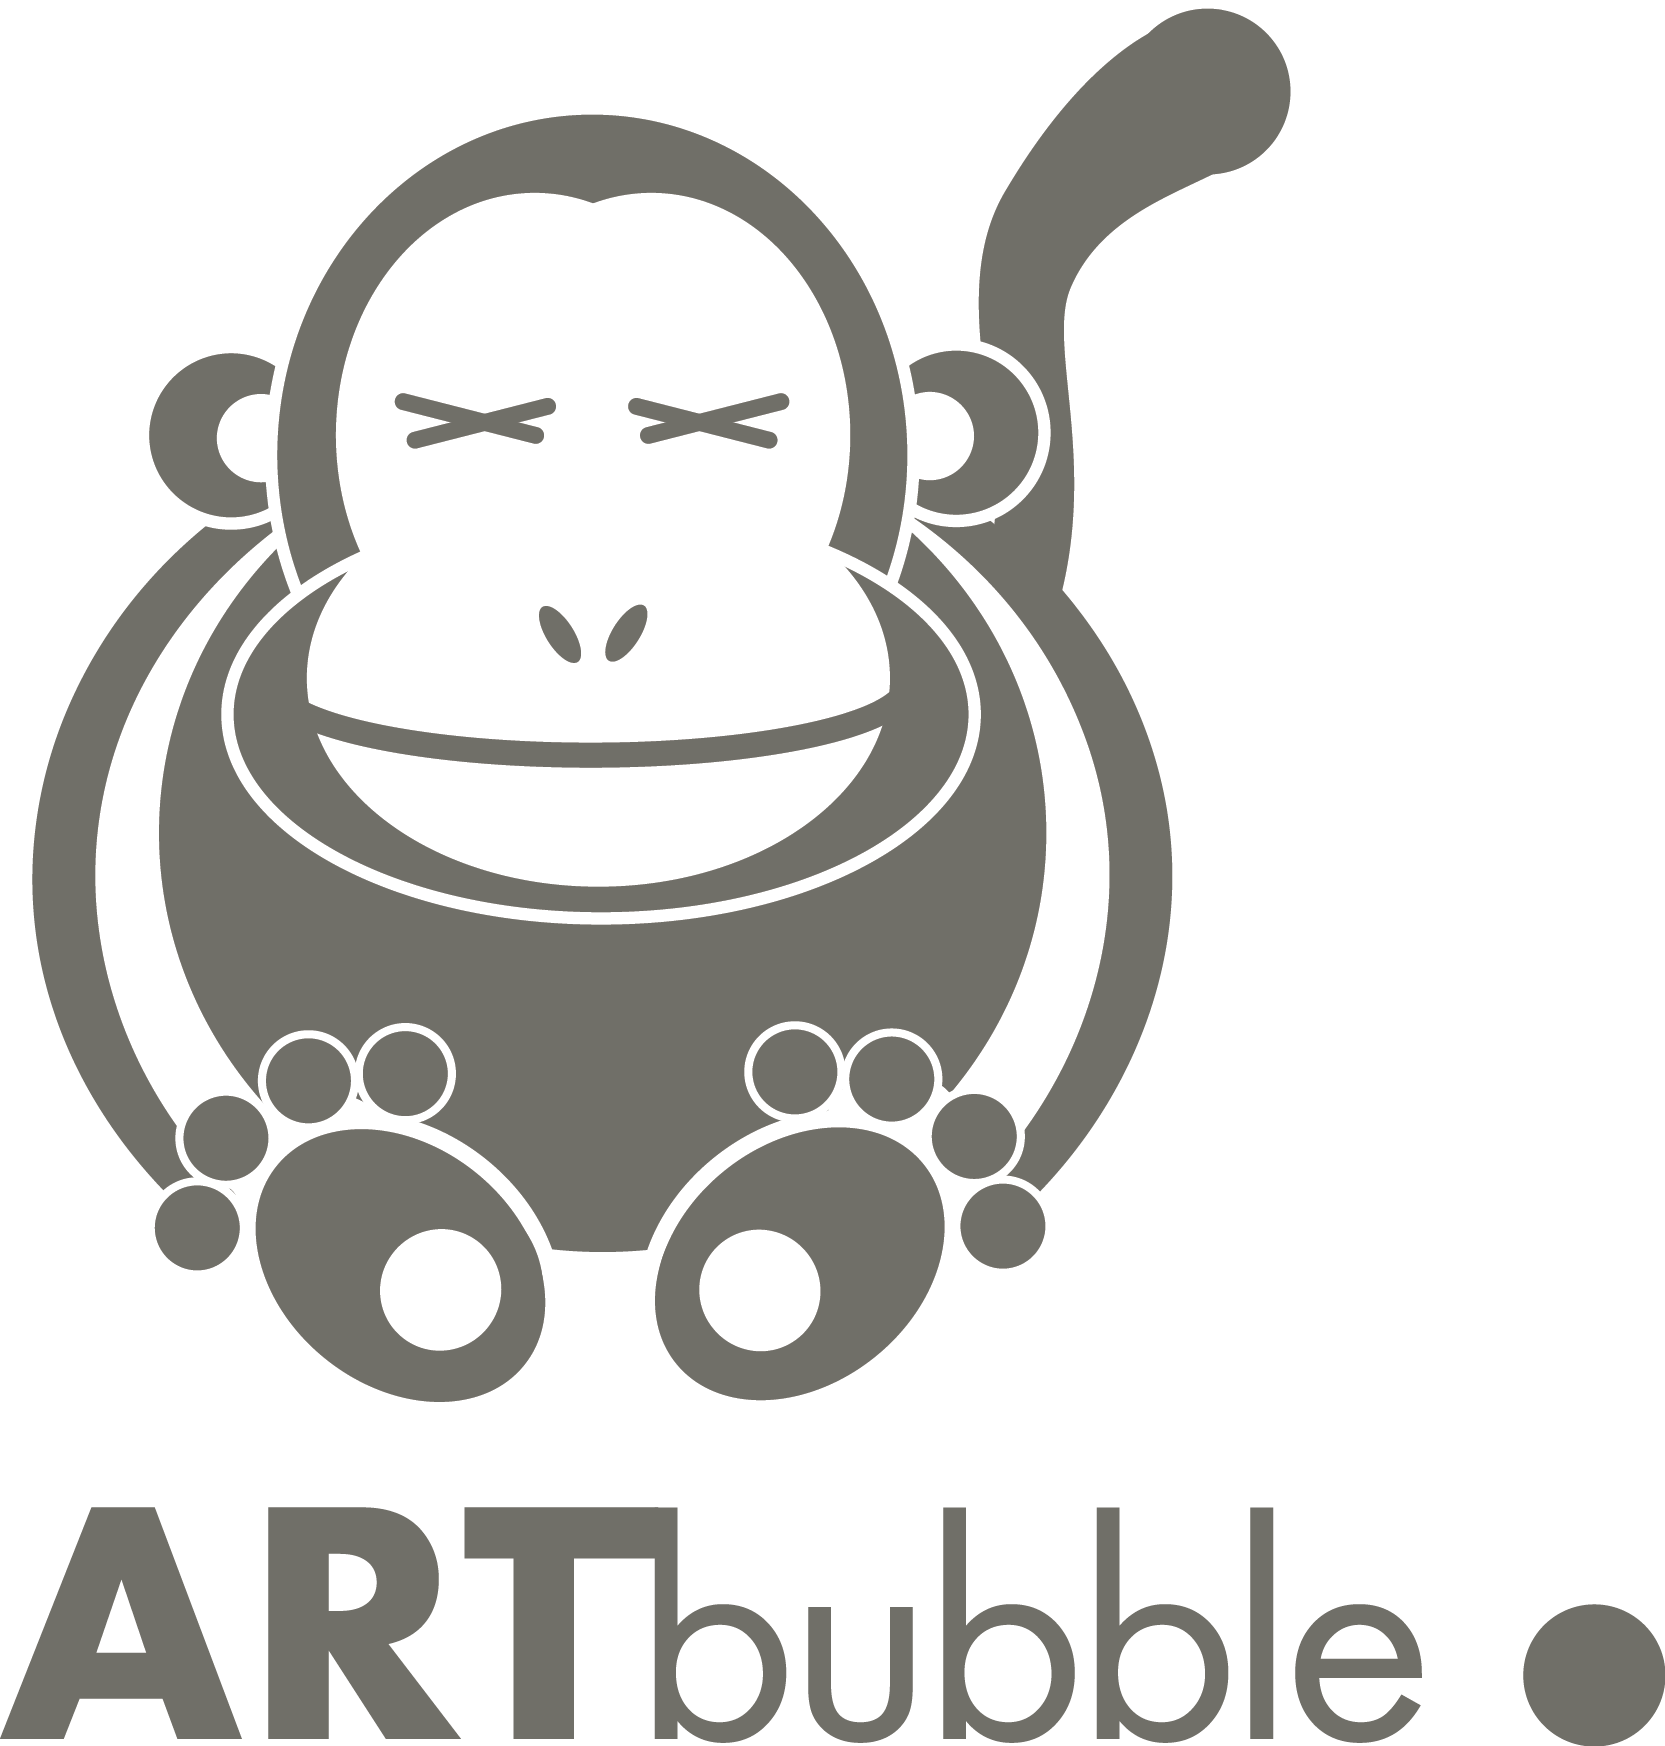 ARTbubble logo WEB